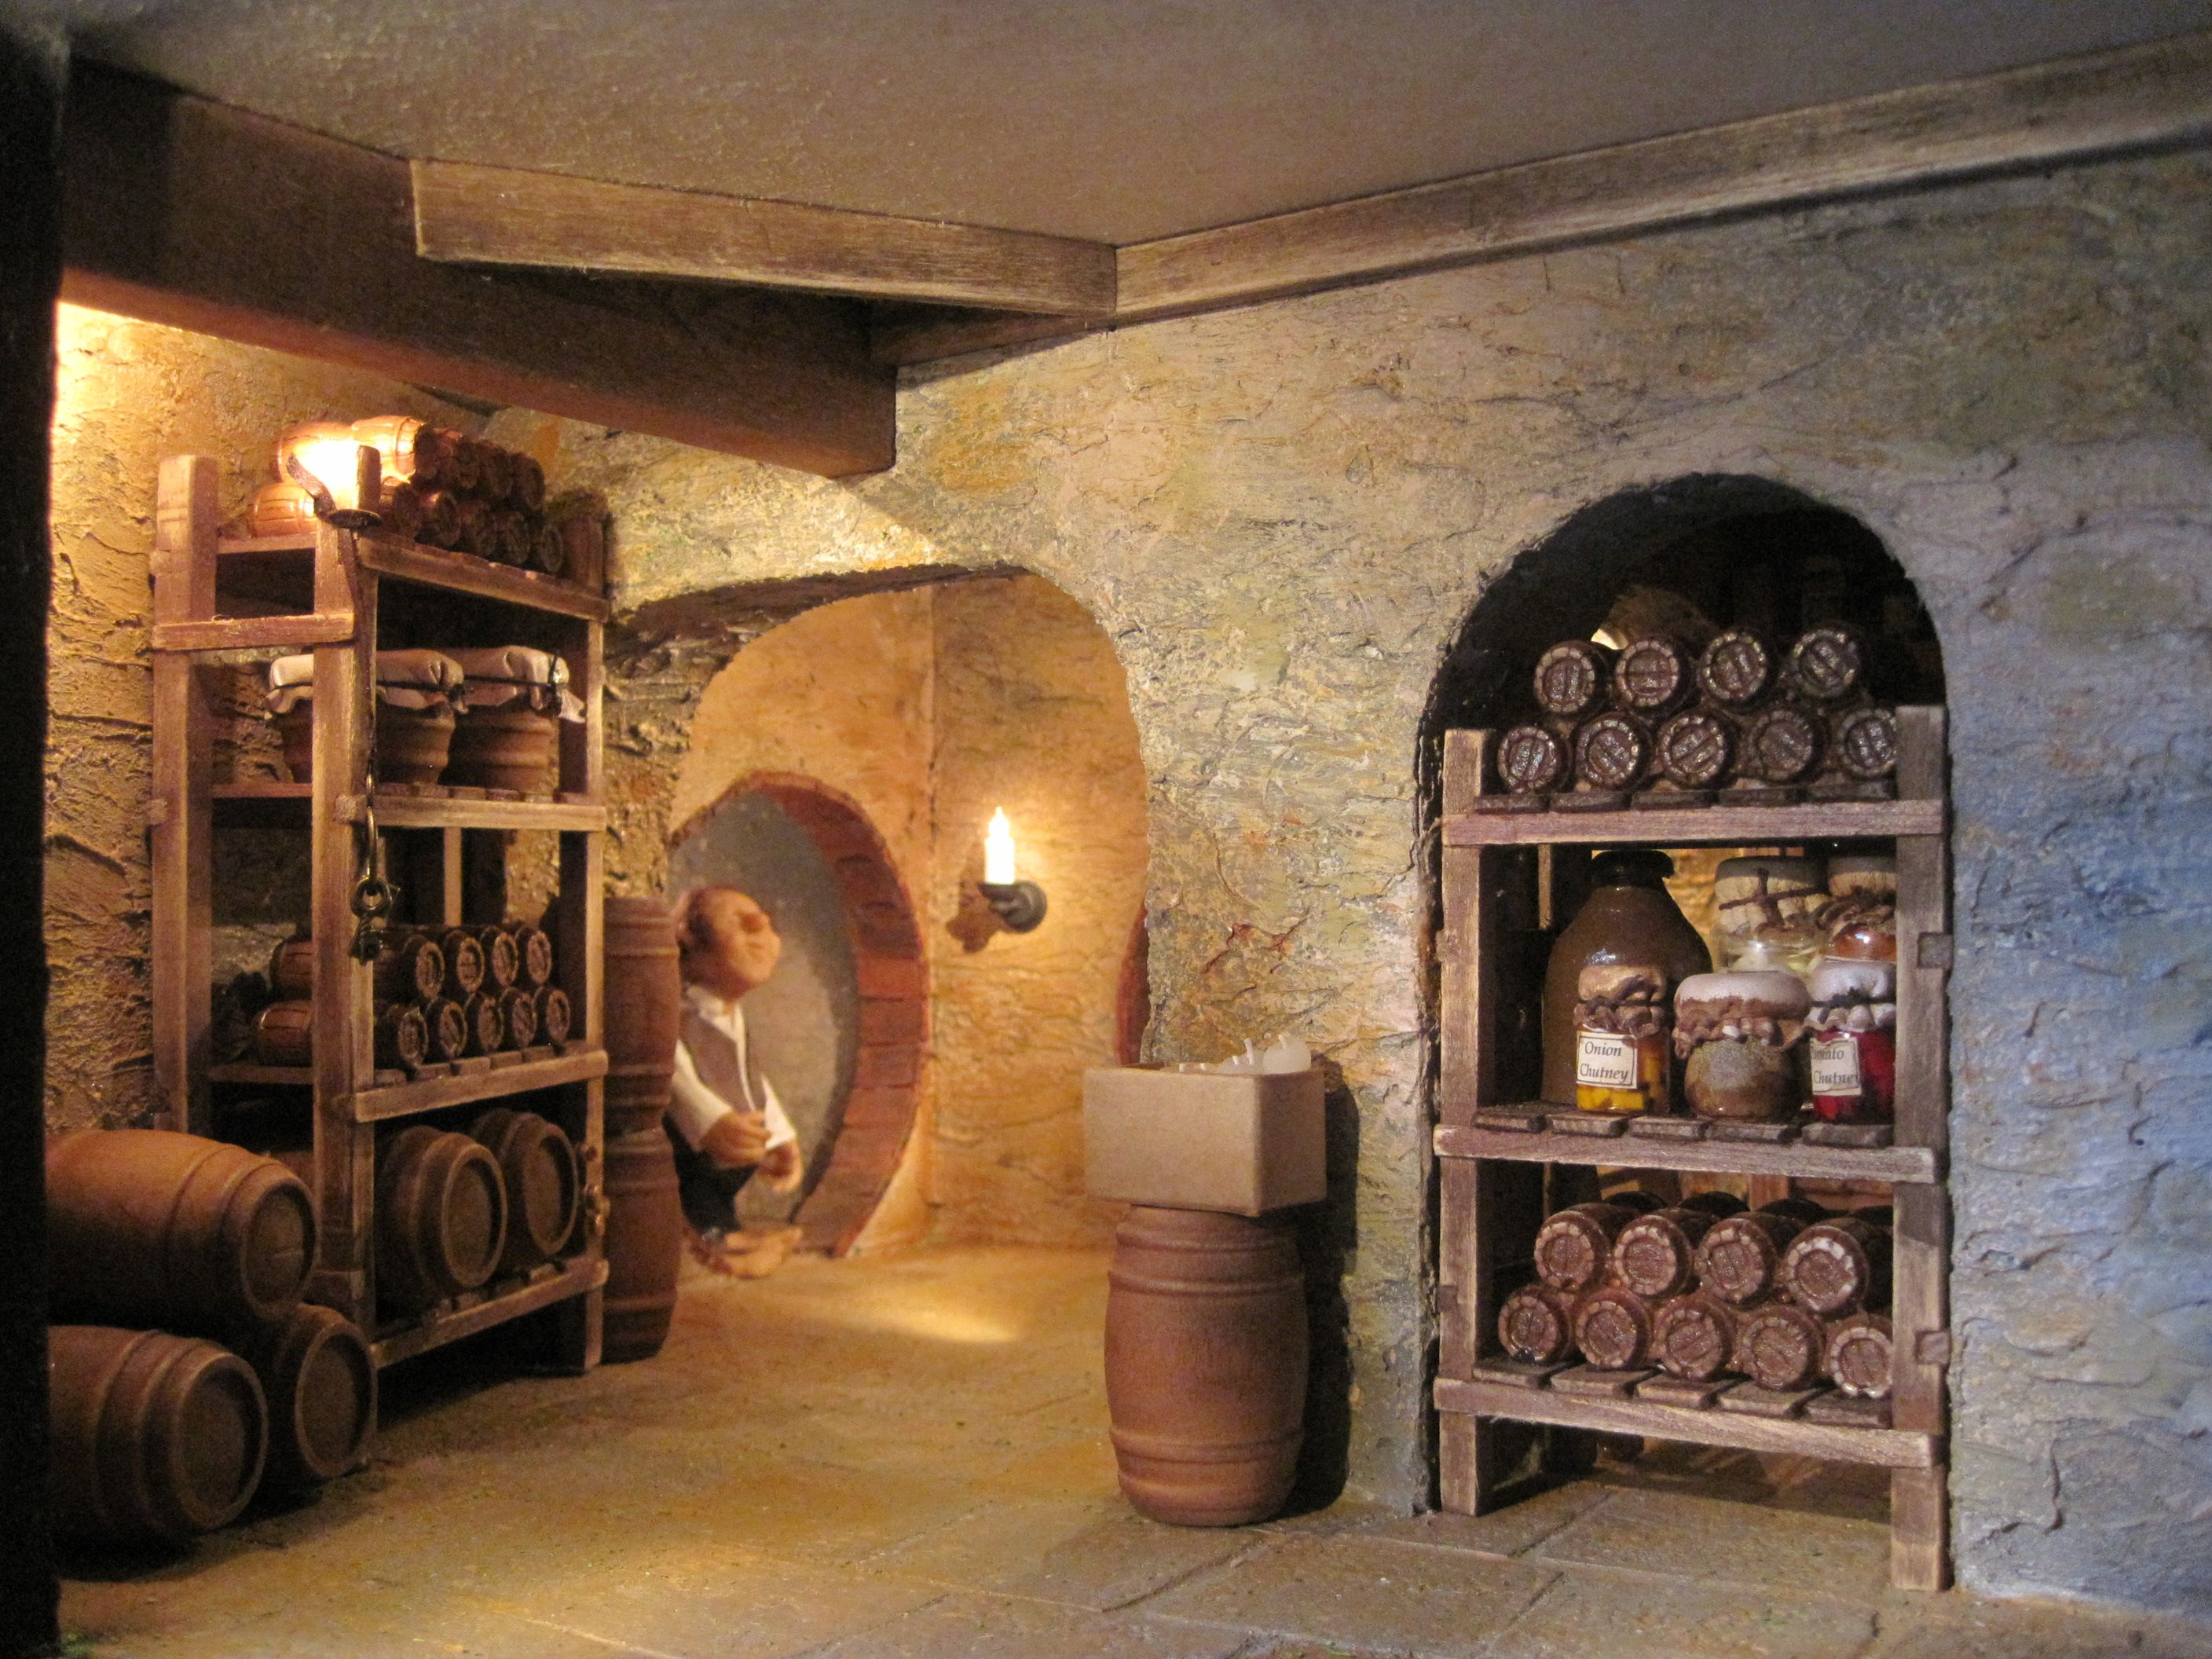 Dachboden Kleine Küche Inside Cellar Of The Hobbit Hole Miniature Dioramen